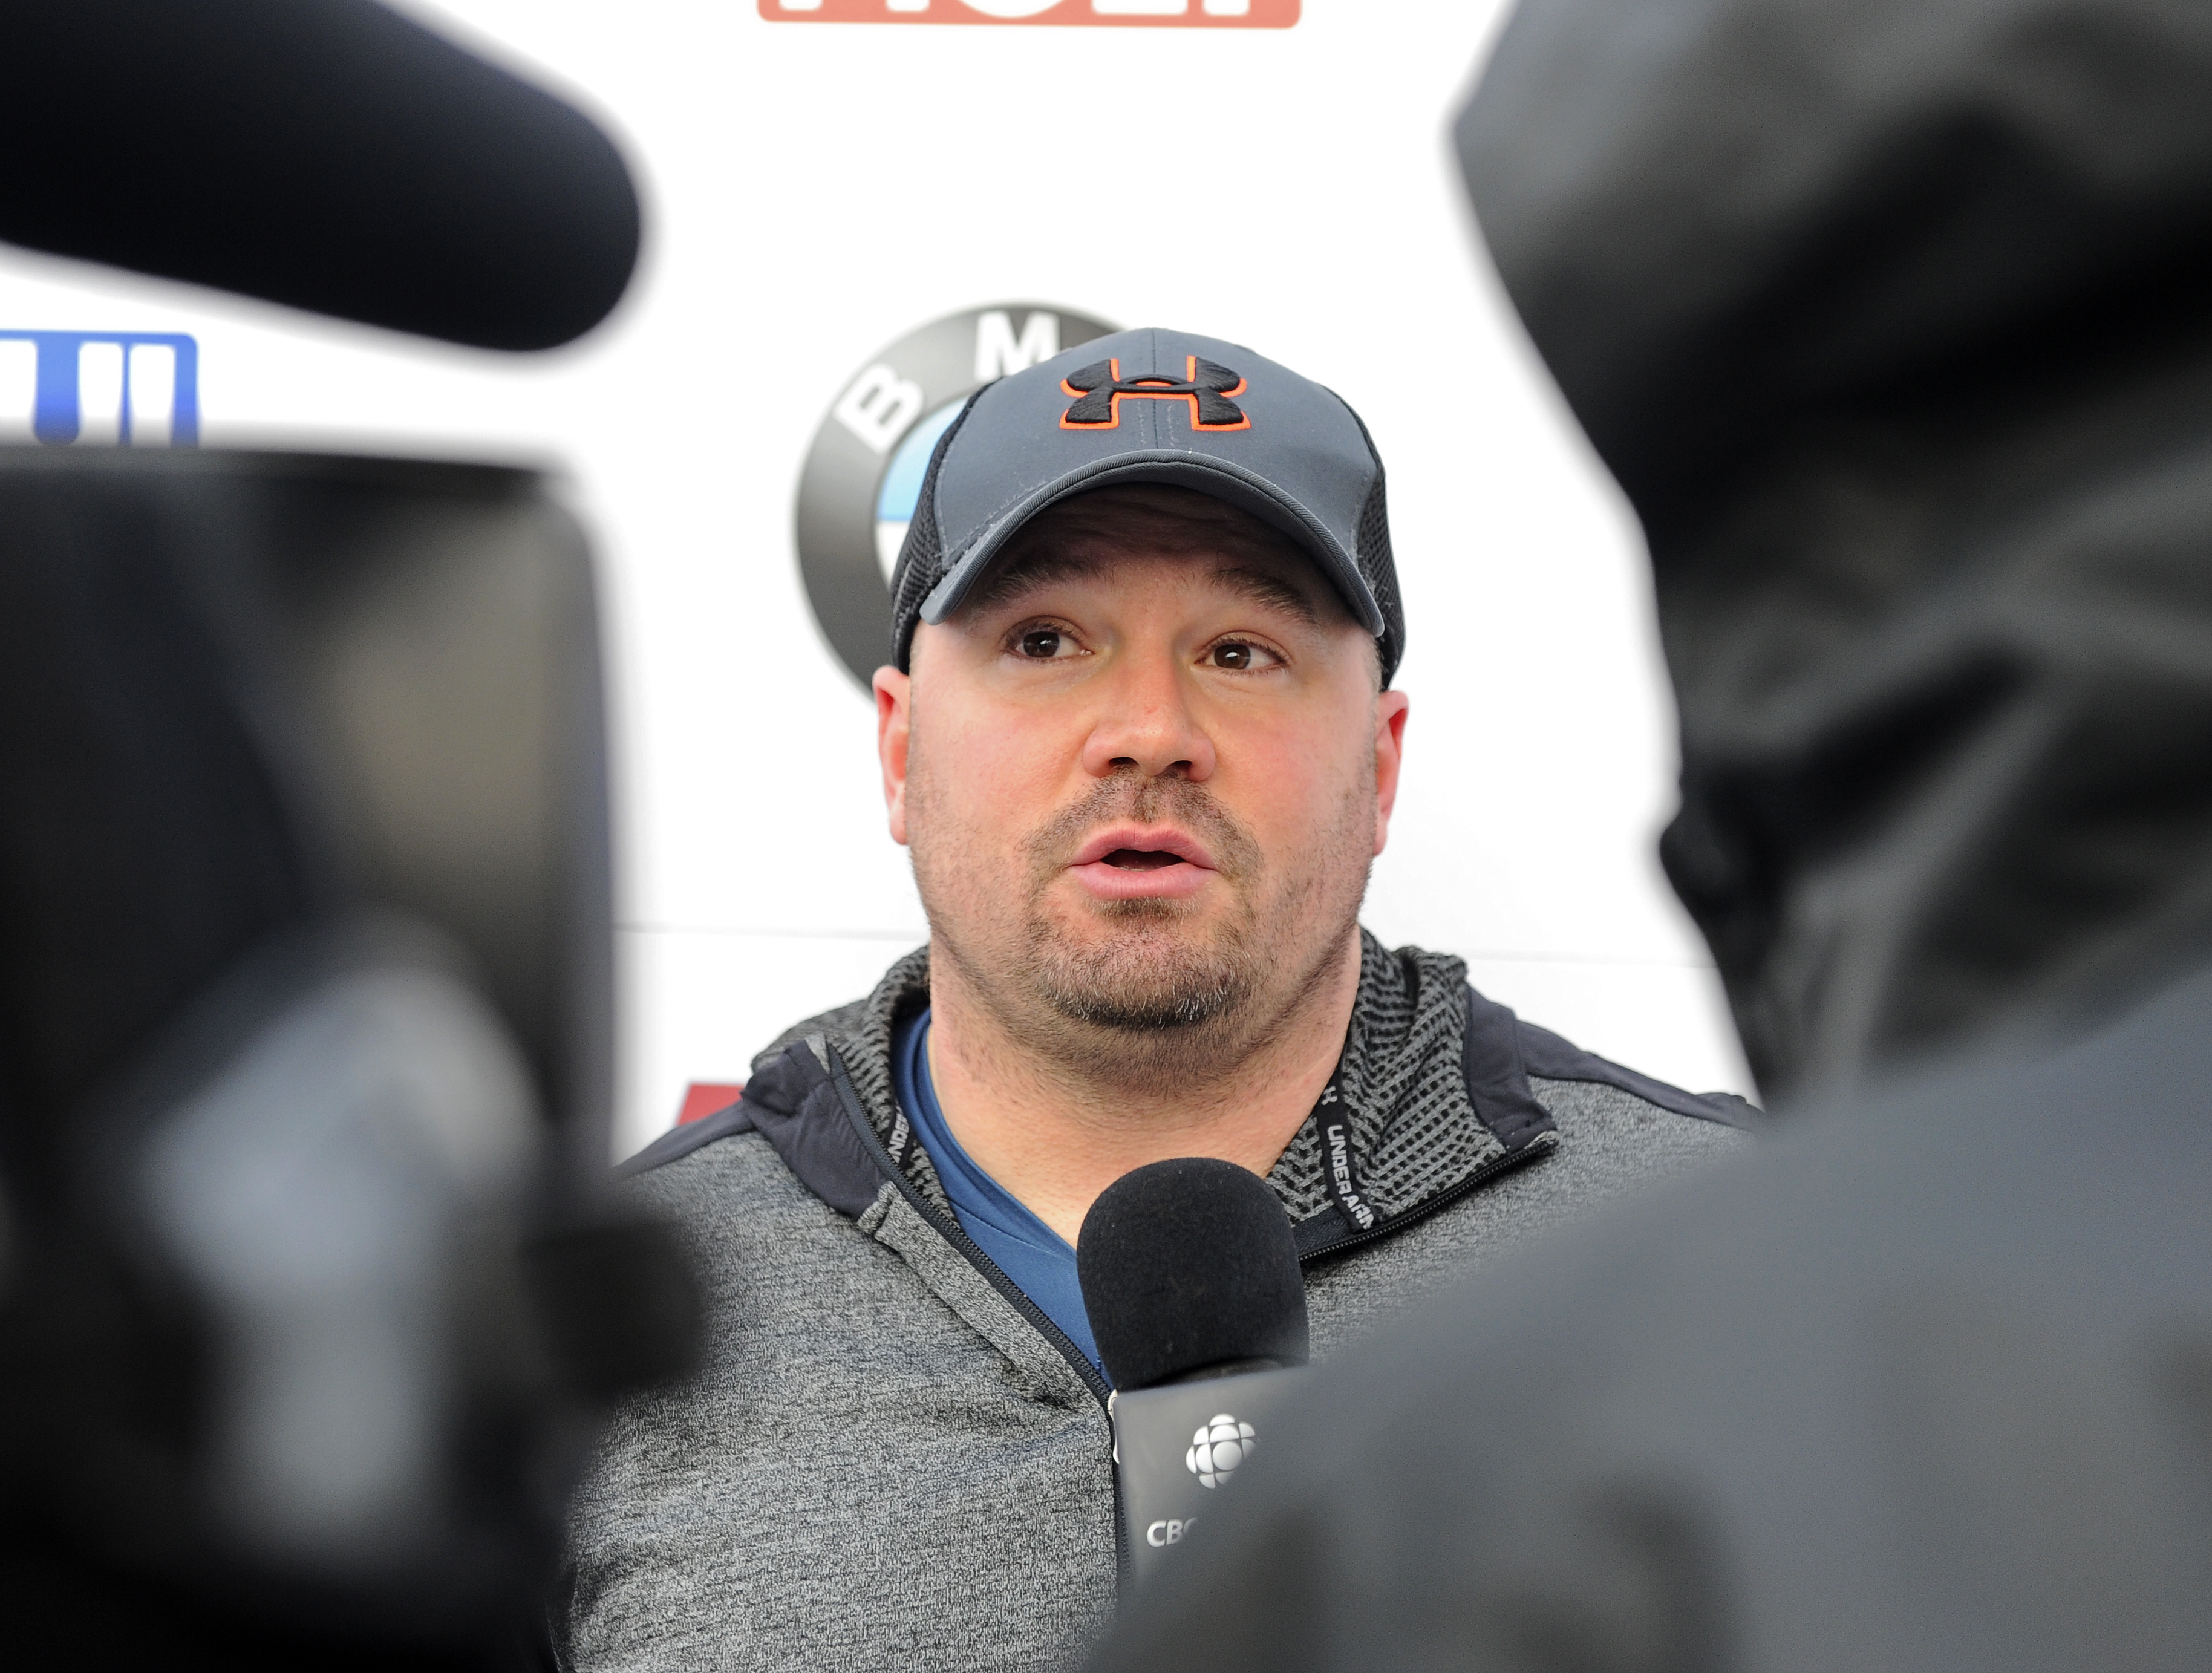 FILE - In this Friday, Dec. 16, 2016 file photo, driver Steven Holcomb, of the United States, talks with reporters in the finish area after winning the mens two-man bobsled World Cup race in Lake Placid, N.Y. Olympic bobsledding champion Steven Holcomb ha